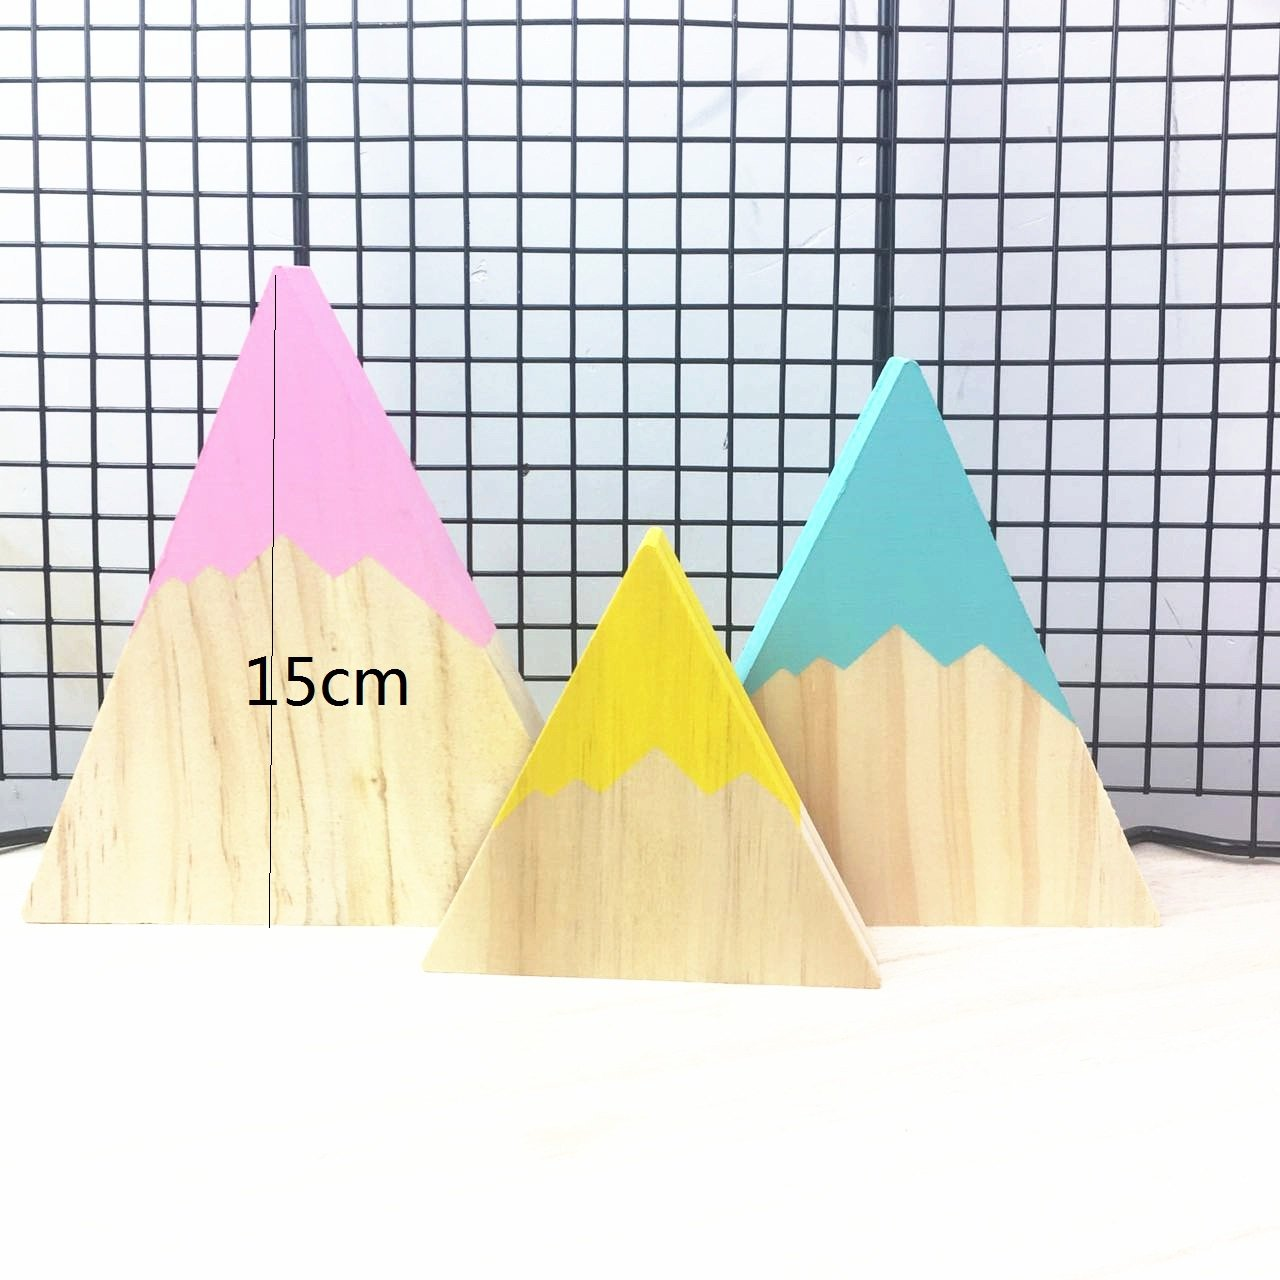 Gold Happy Nordic Top Woodland Wood Mountain Decorative Handmade Kids Bookends Home Decor Wooden Mountain Children's Room Decoration Blocks